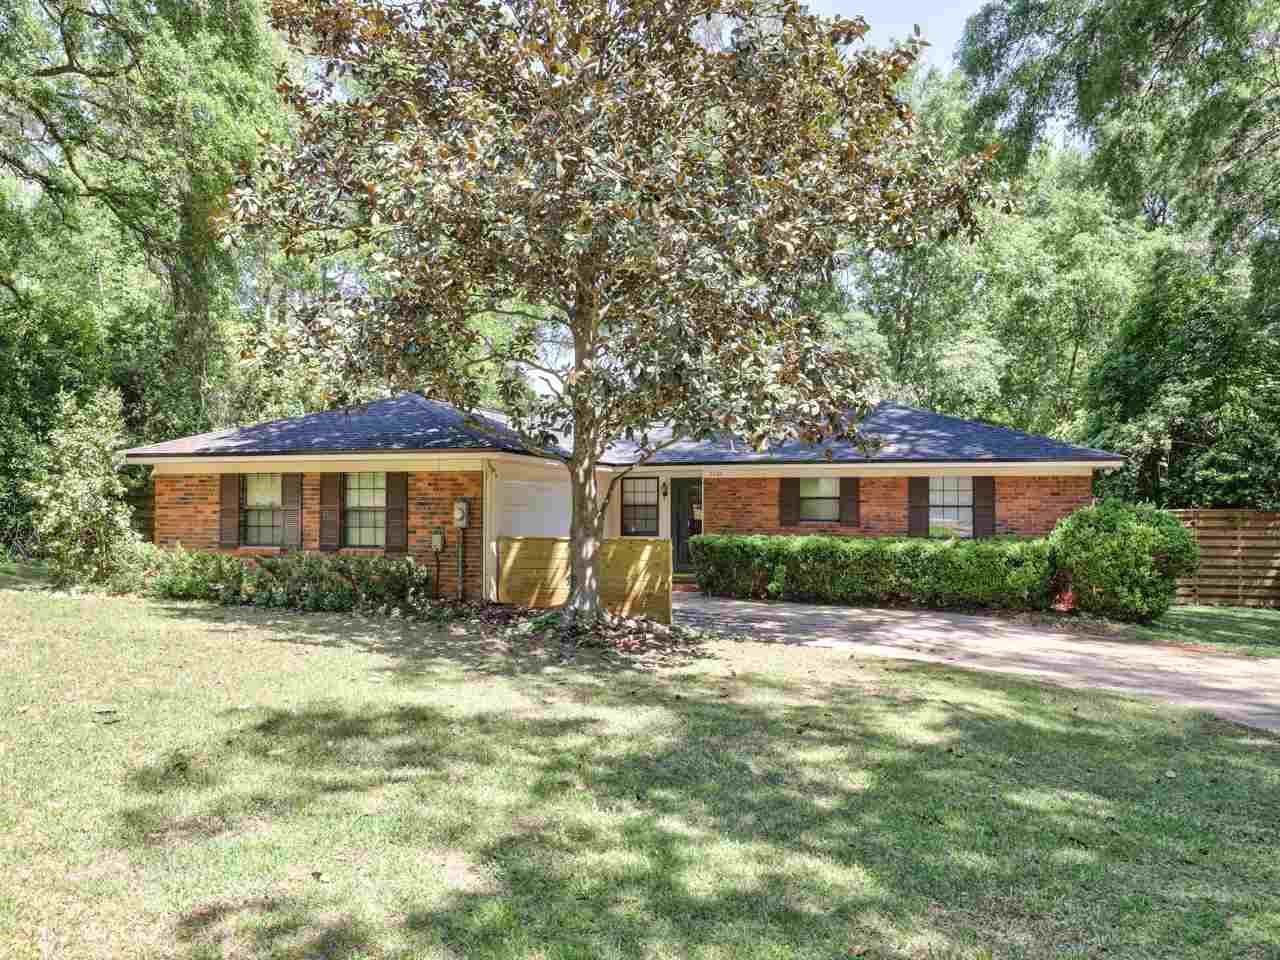 Photo of 3236 Storrington Drive, TALLAHASSEE, FL 32309 (MLS # 331190)